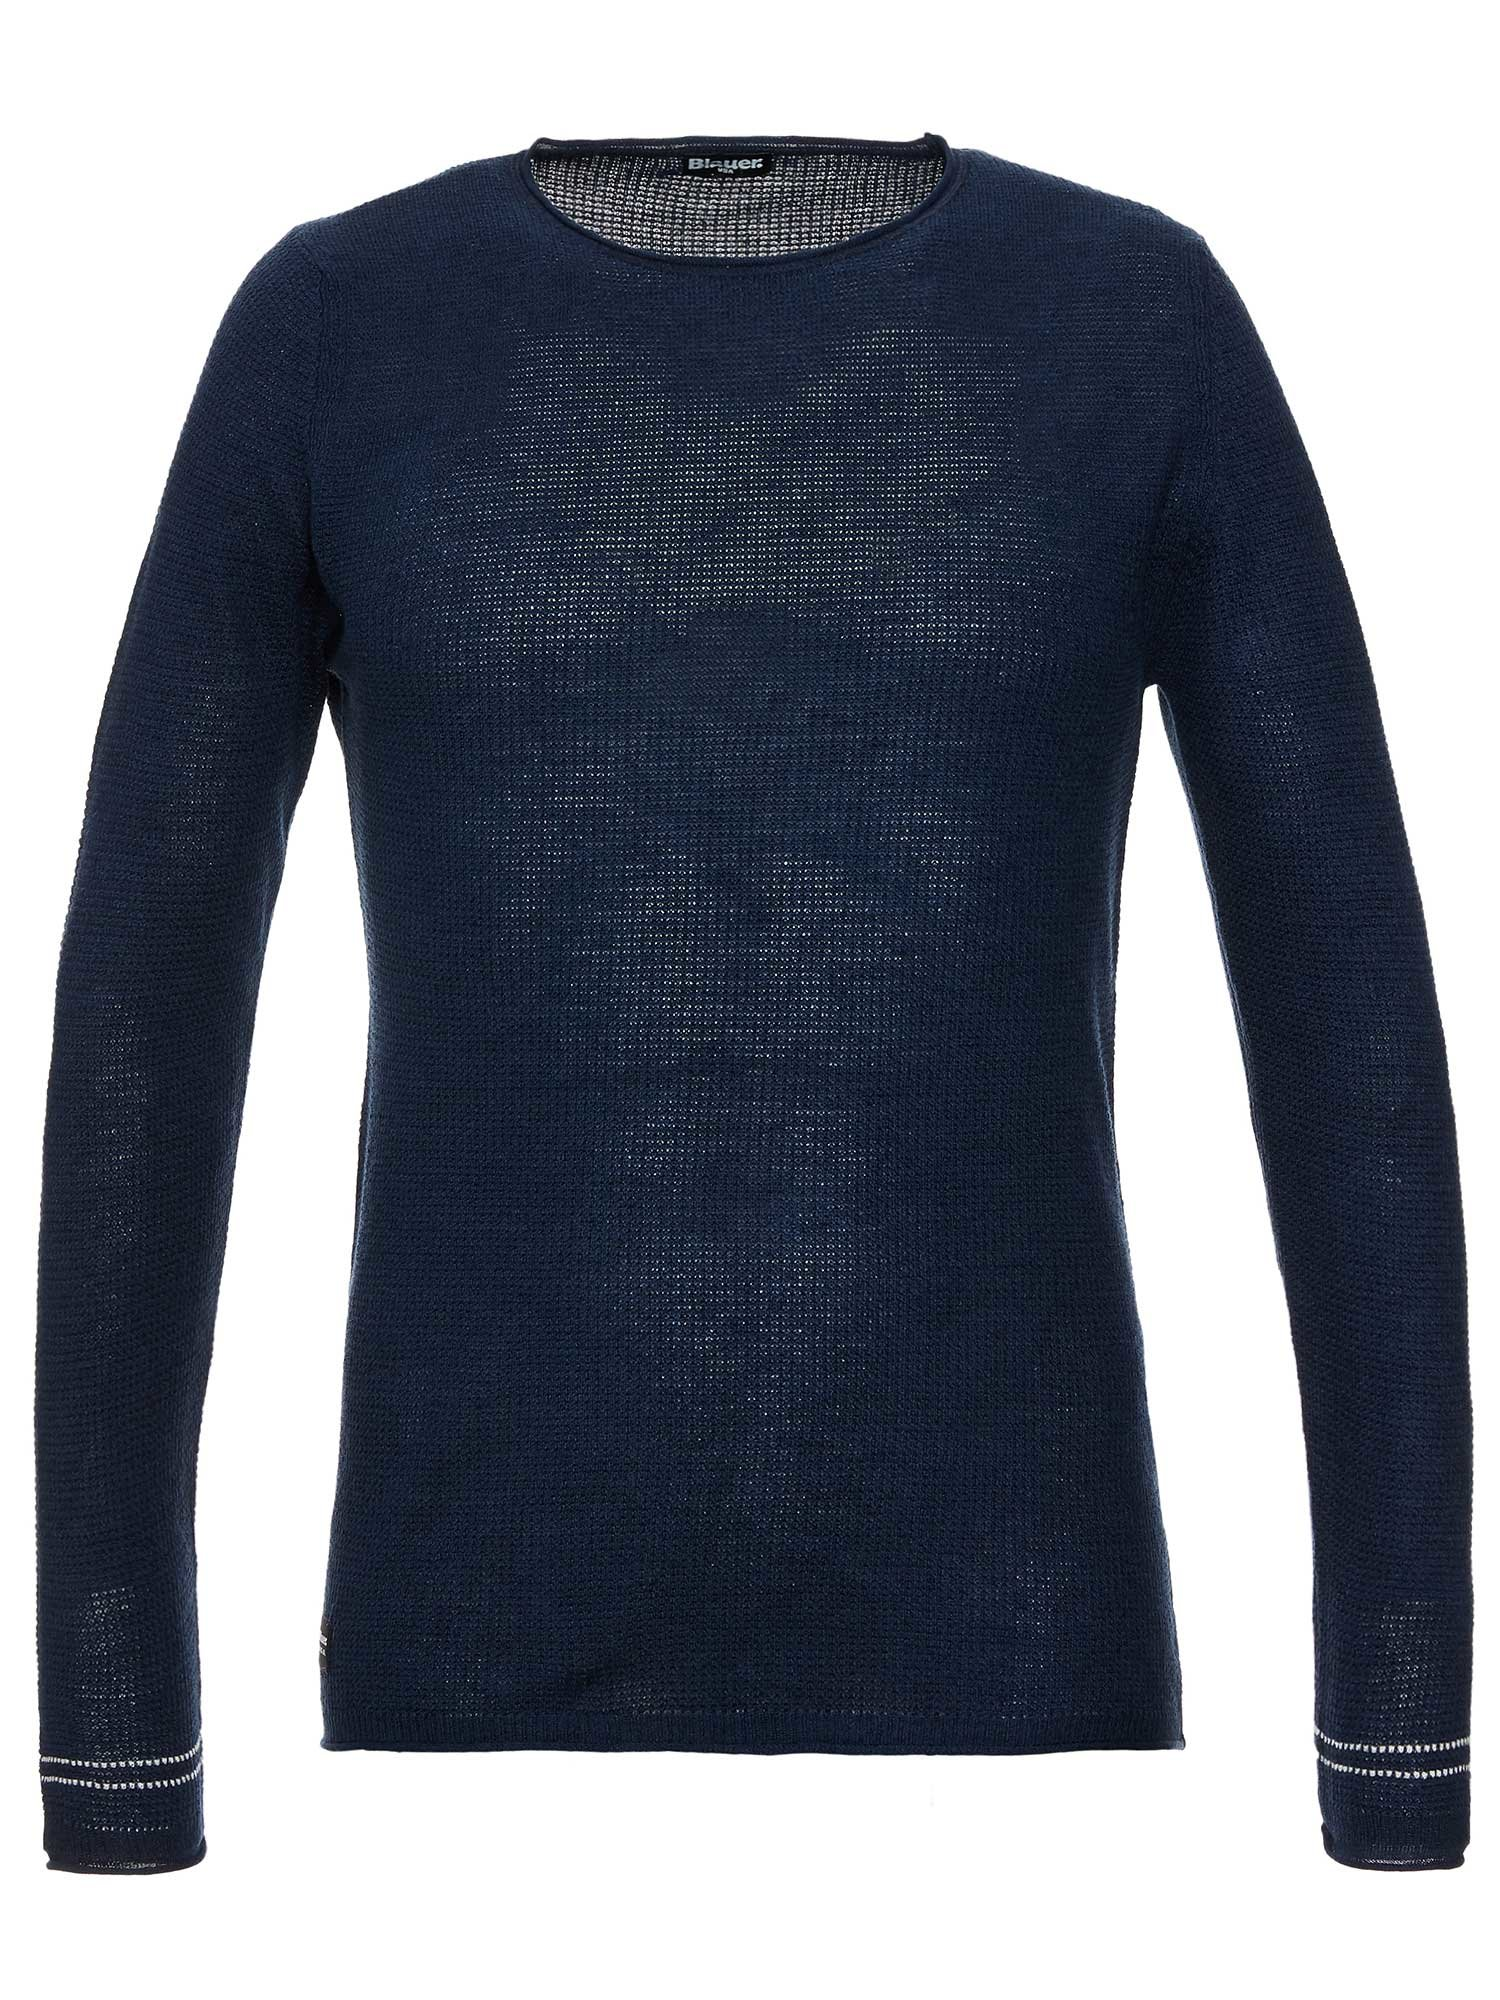 LINEN AND COTTON CREWNECK SWEATER - Blauer